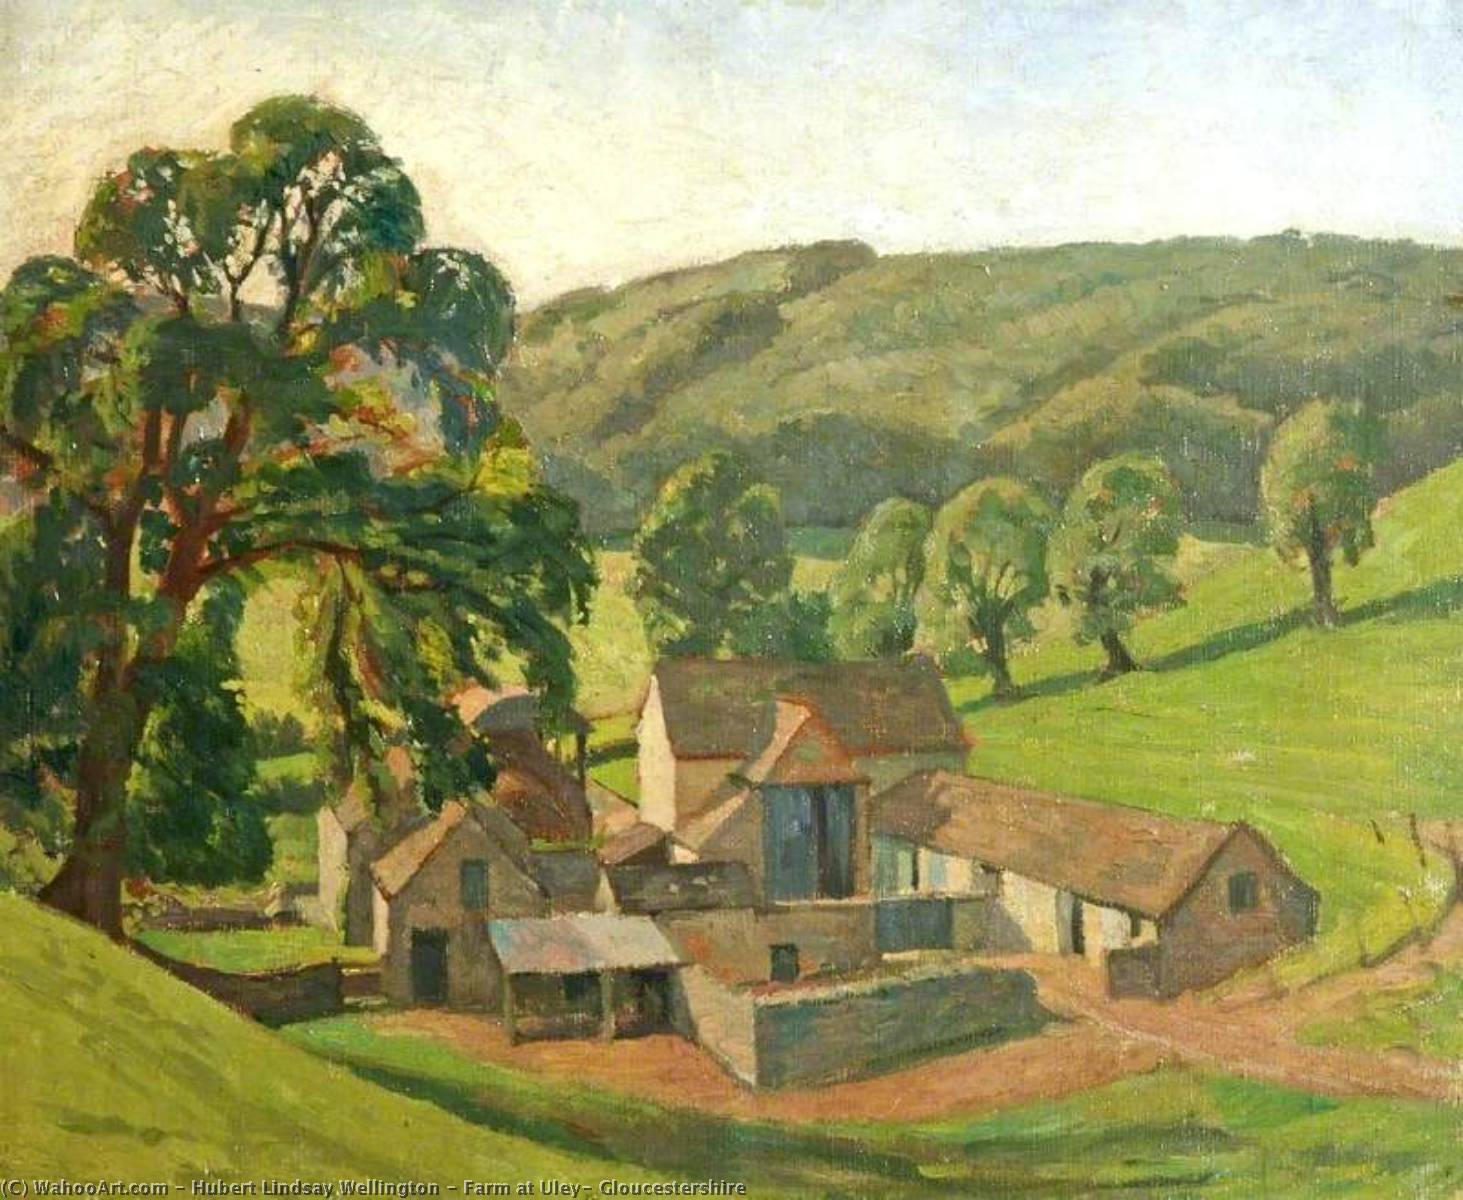 Farm at Uley, Gloucestershire, Oil On Canvas by Hubert Lindsay Wellington